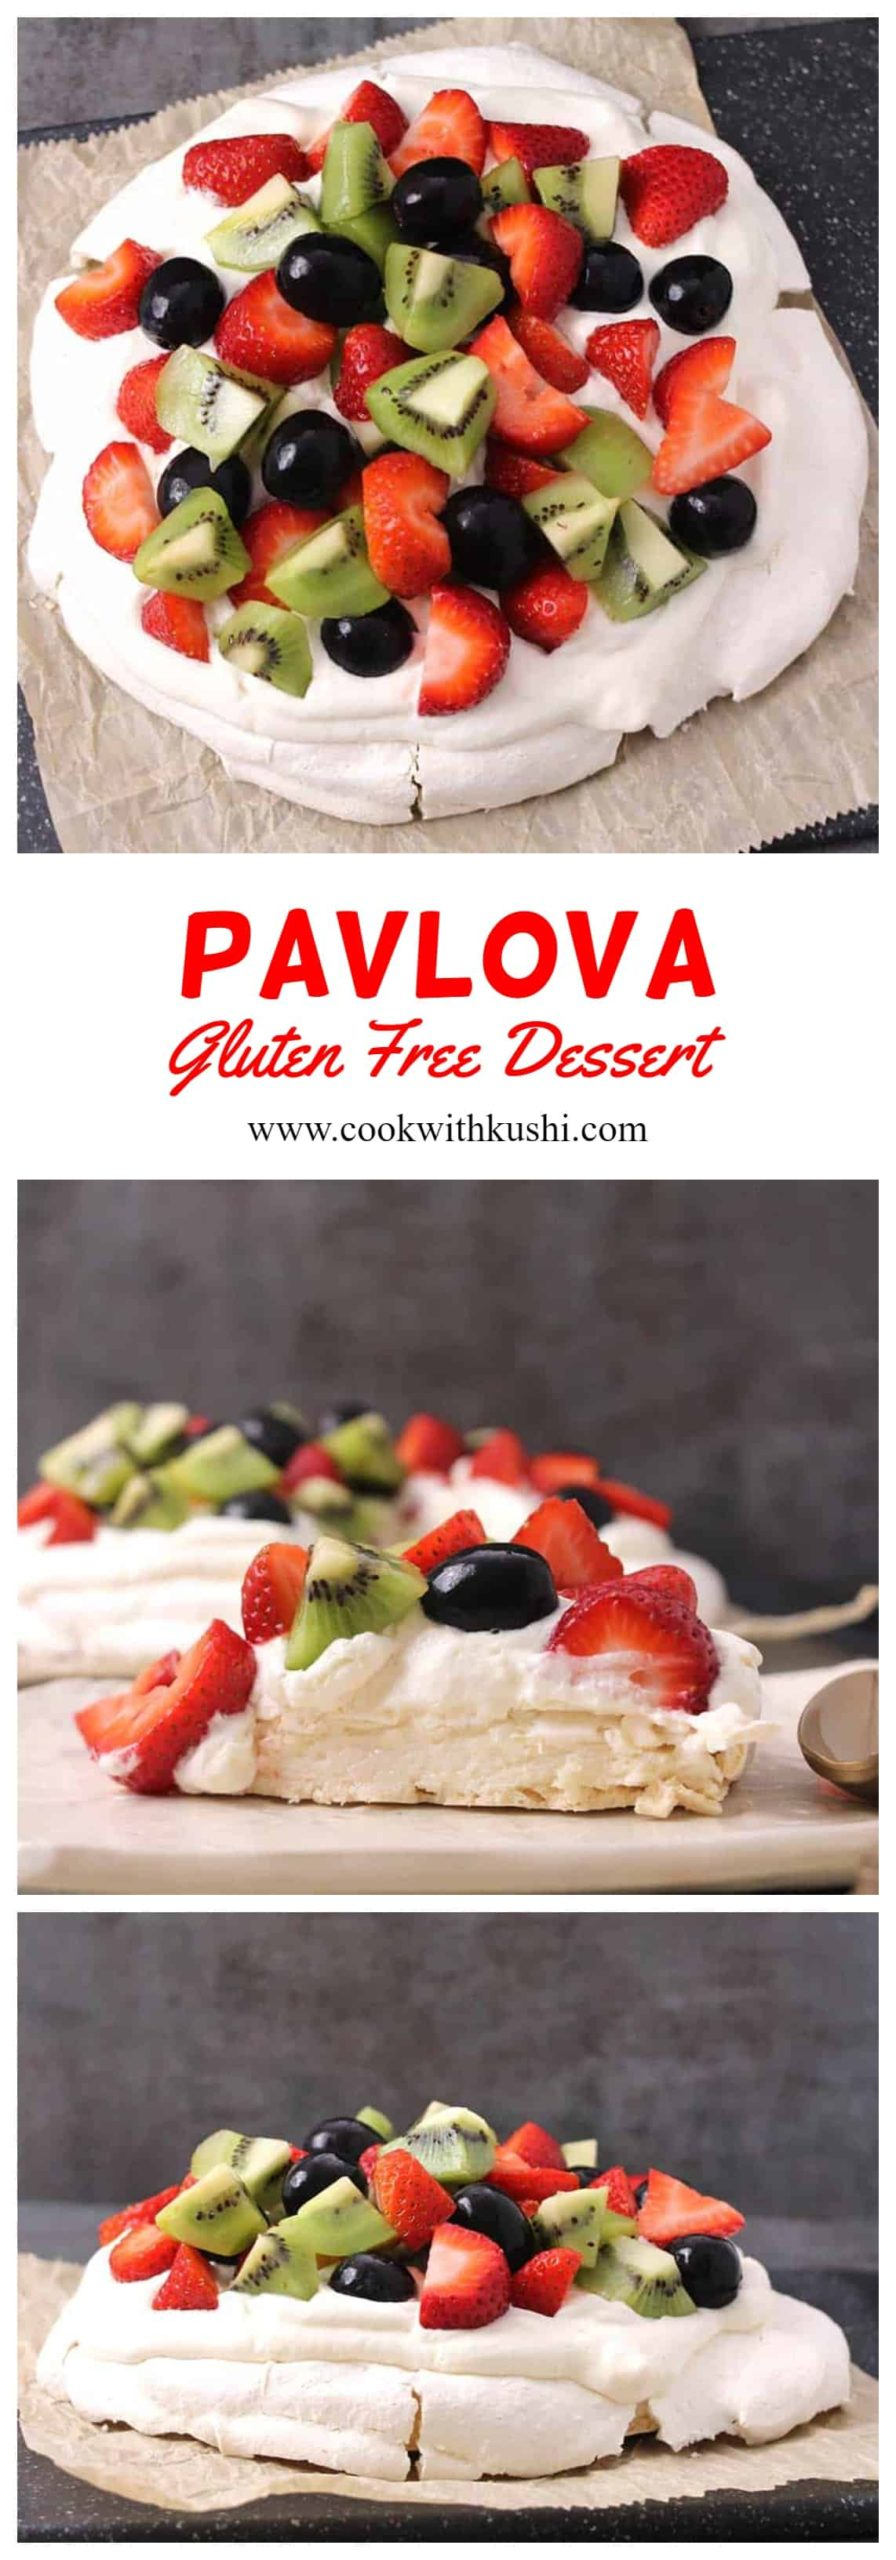 Pavlova is a meringue based 5 ingredient cake dessert which is soft and light inside like a marshmallow, crunchy crisp around the edges and chewy on the top. This is then topped with fresh whipped cream and fresh fruits in season making it a total gluten free dessert #summerfood #summerdessert #berries #glutenfree #easydesserts #meringue